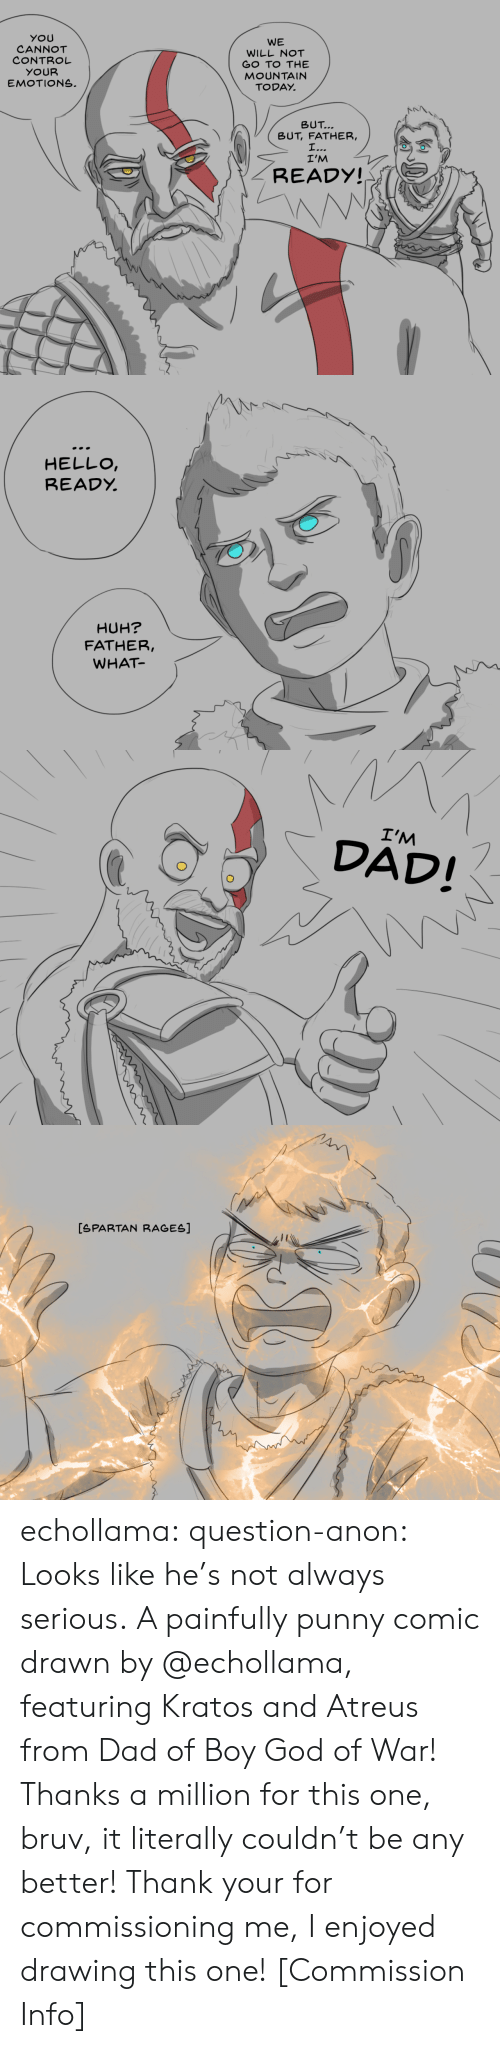 Bruv: YOU  CANNOT  CONTROL  YOUR  EMOTIONS.  WE  WILL NOT  GO TO THE  MOUNTAIN  TODAY.  トN\  \  BUT  BUT, FATHER,  I'M  READY!   HELLO  READỵ  HUH?  FATHER,  WHAT   I'M  DAD!   [SPARTAN RAGES] echollama:  question-anon:  Looks like he's not always serious. A painfully punny comic drawn by @echollama, featuring Kratos and Atreus from Dad of Boy God of War! Thanks a million for this one, bruv, it literally couldn't be any better!  Thank your for commissioning me, I enjoyed drawing this one!    [Commission Info]